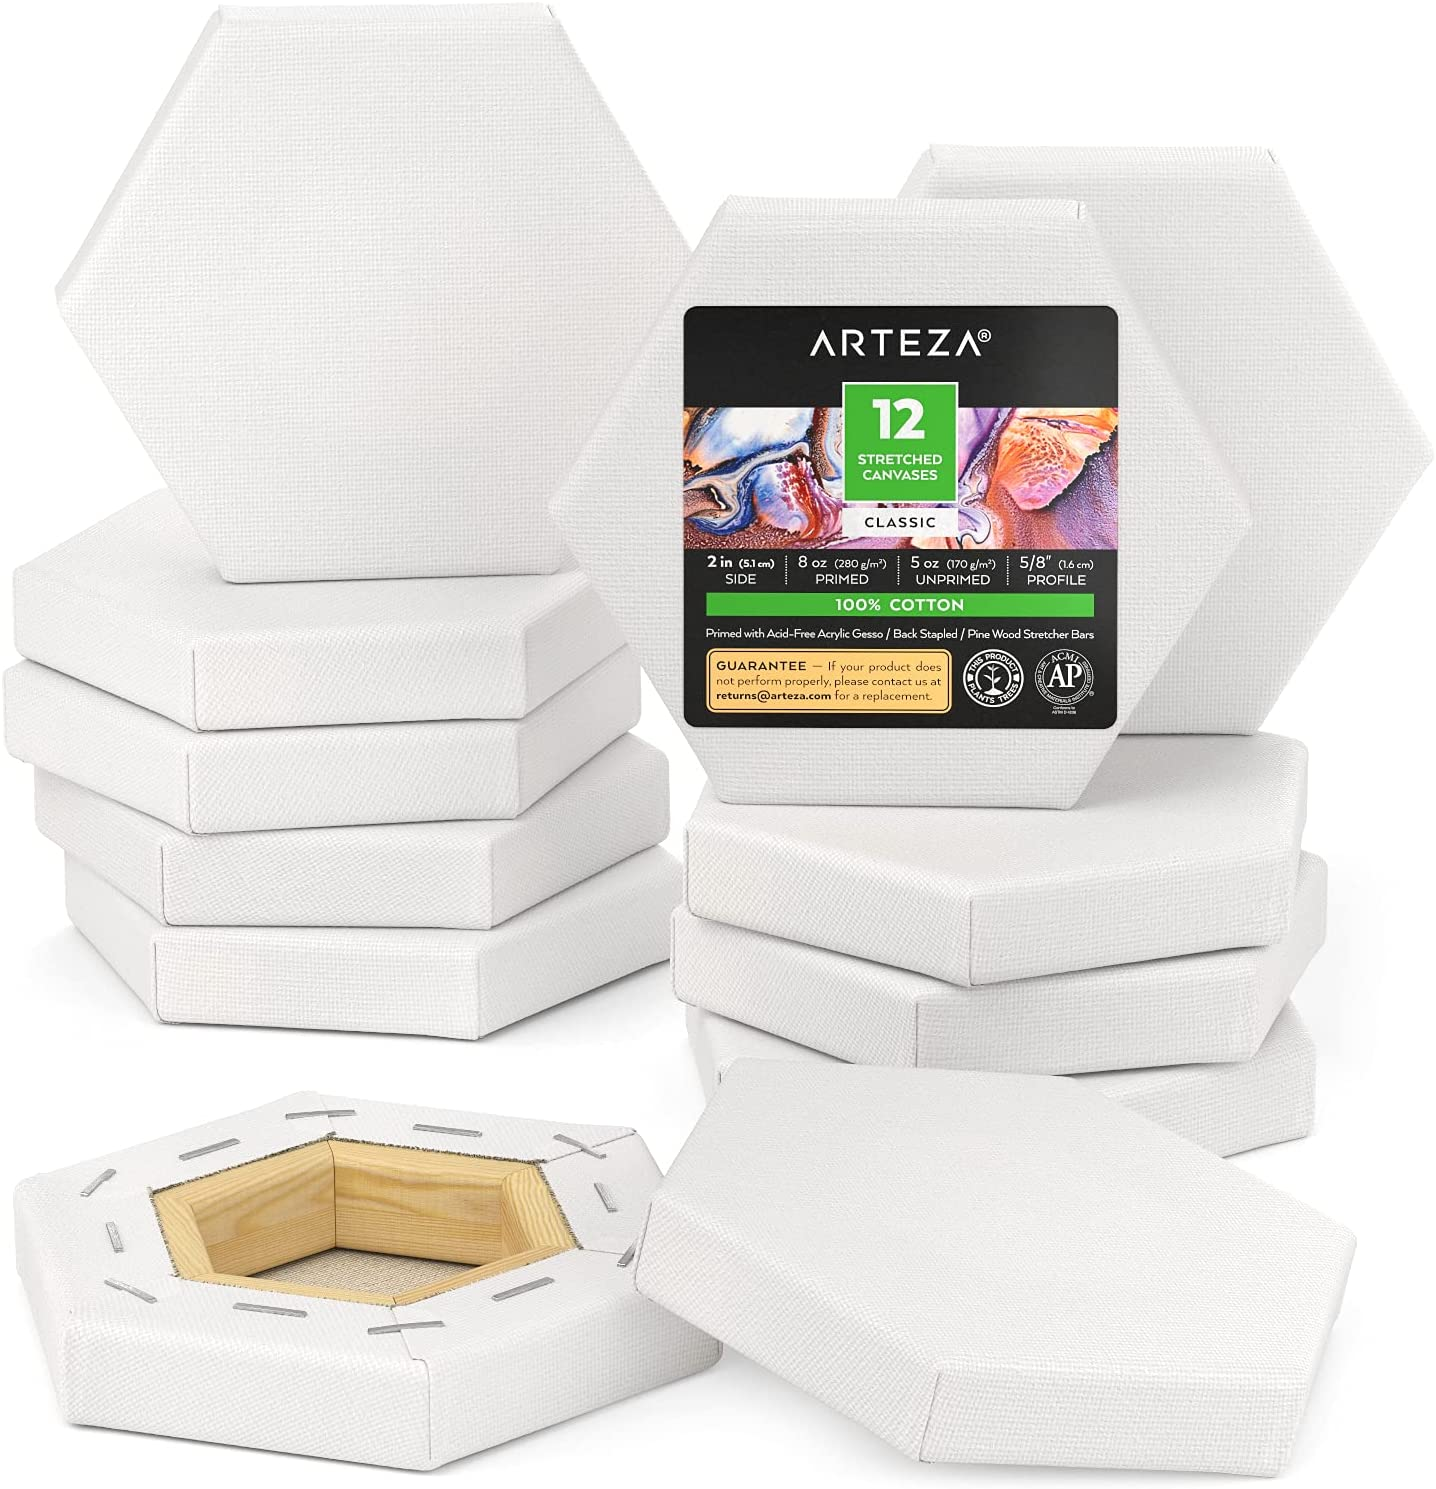 Arteza Stretched Canvas 12 Pack Super Special SALE held Blank Canv Dealing full price reduction 2 inches Hexagonal